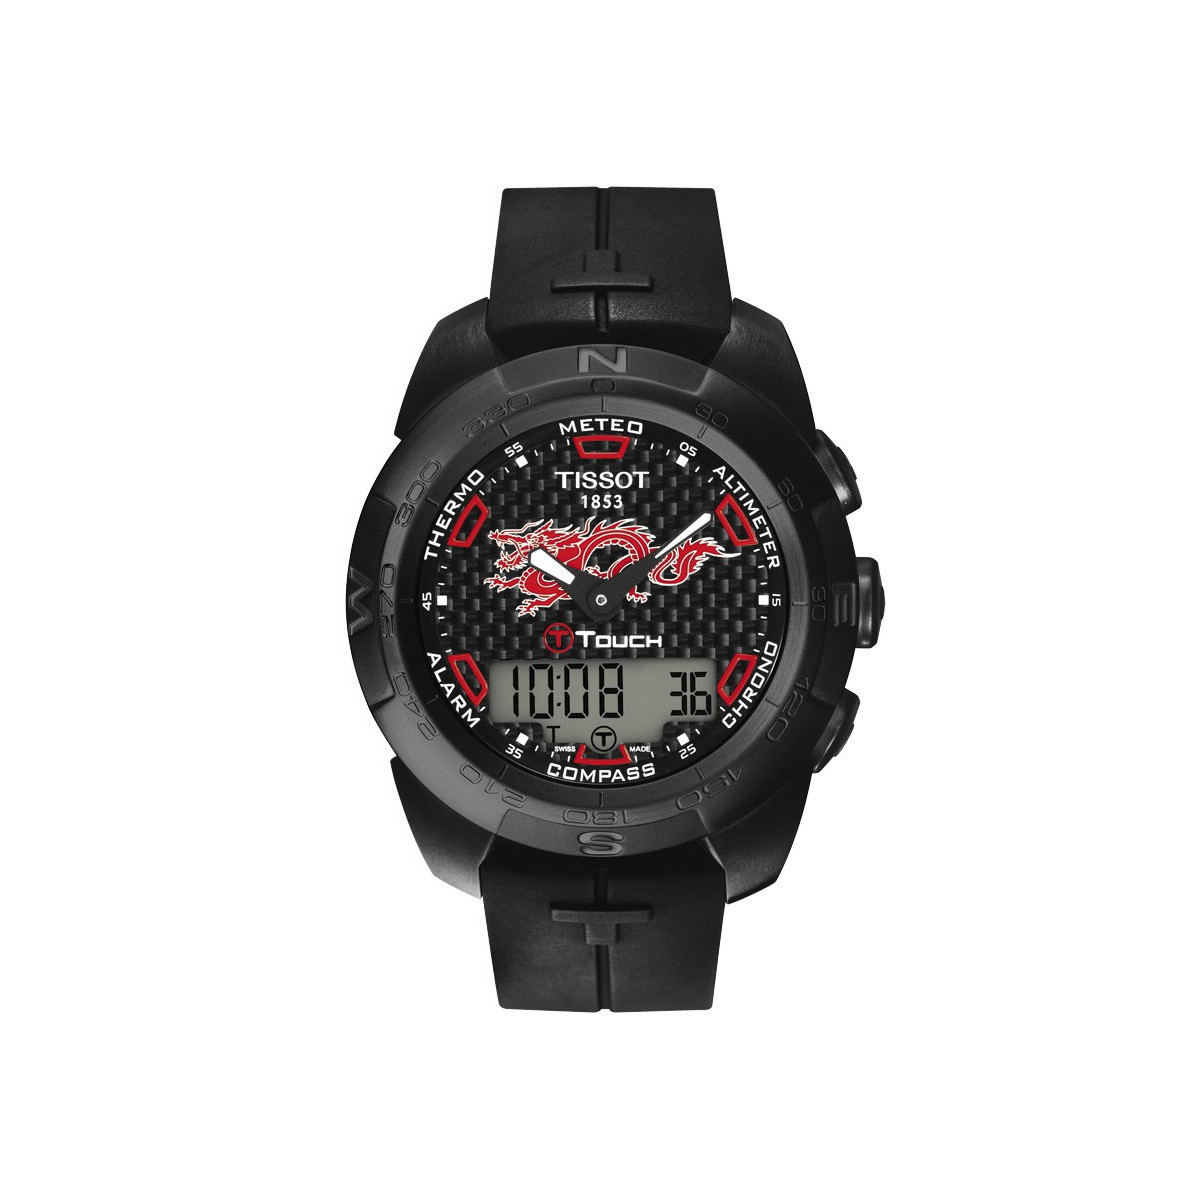 TISSOT T-TOUCH EXPERT WATCH